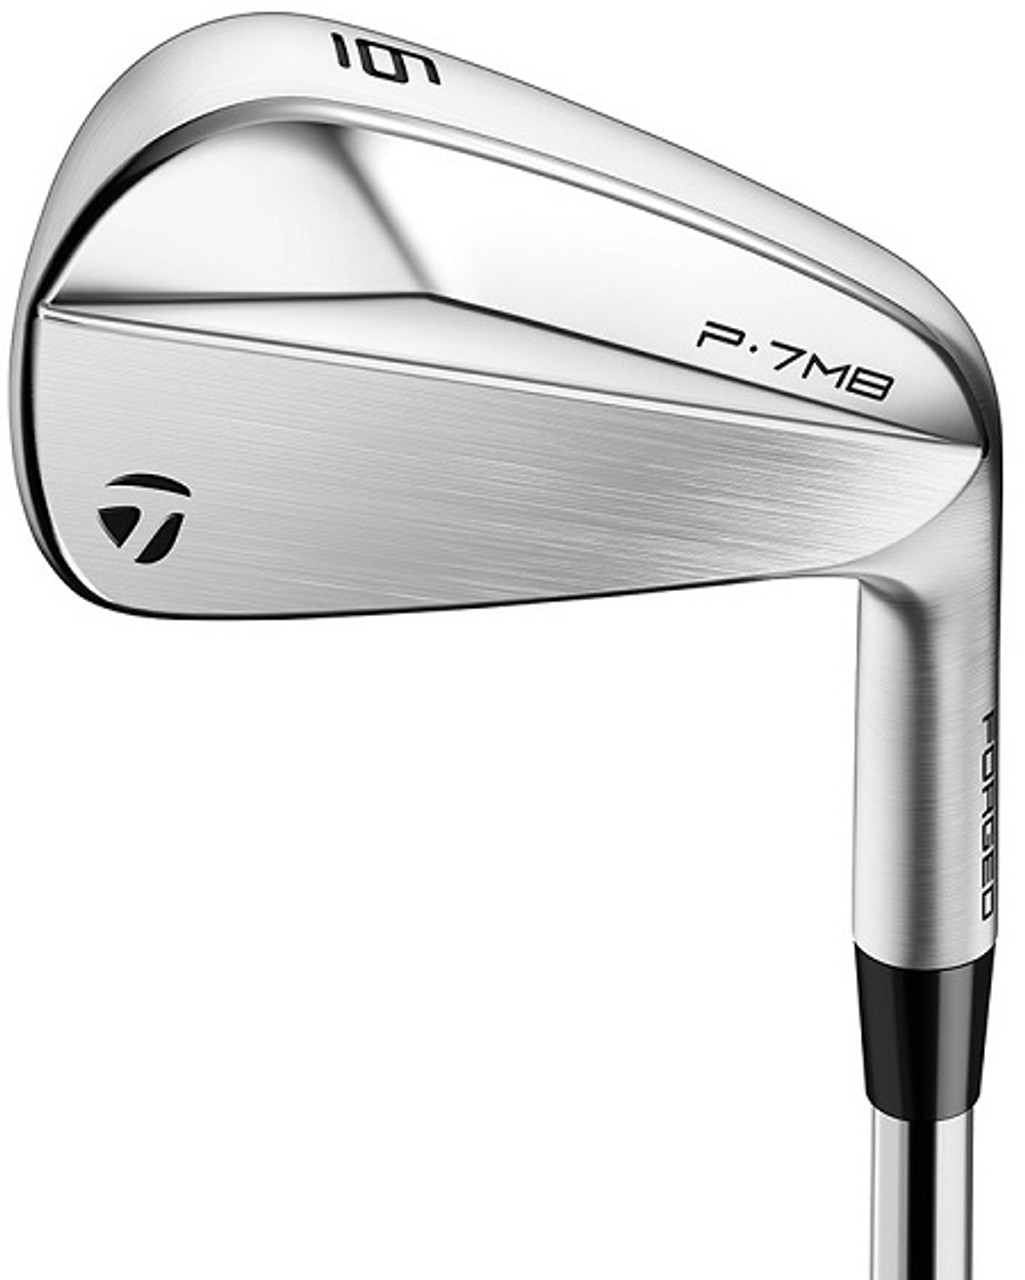 TaylorMade P7MB iron review